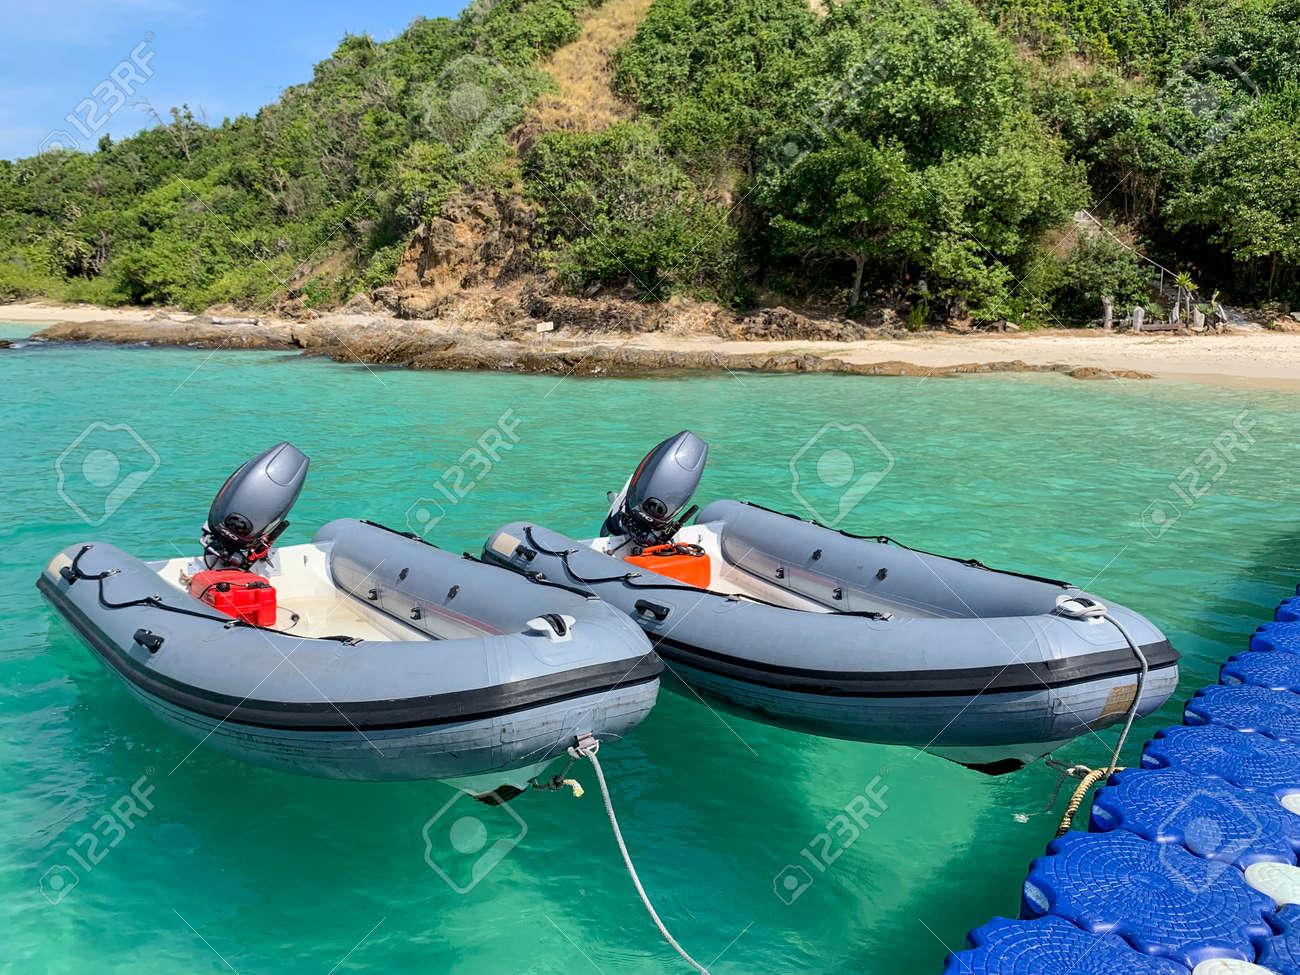 Inflatable boats tie with floating pier in front of a beautiful beach - 160536508